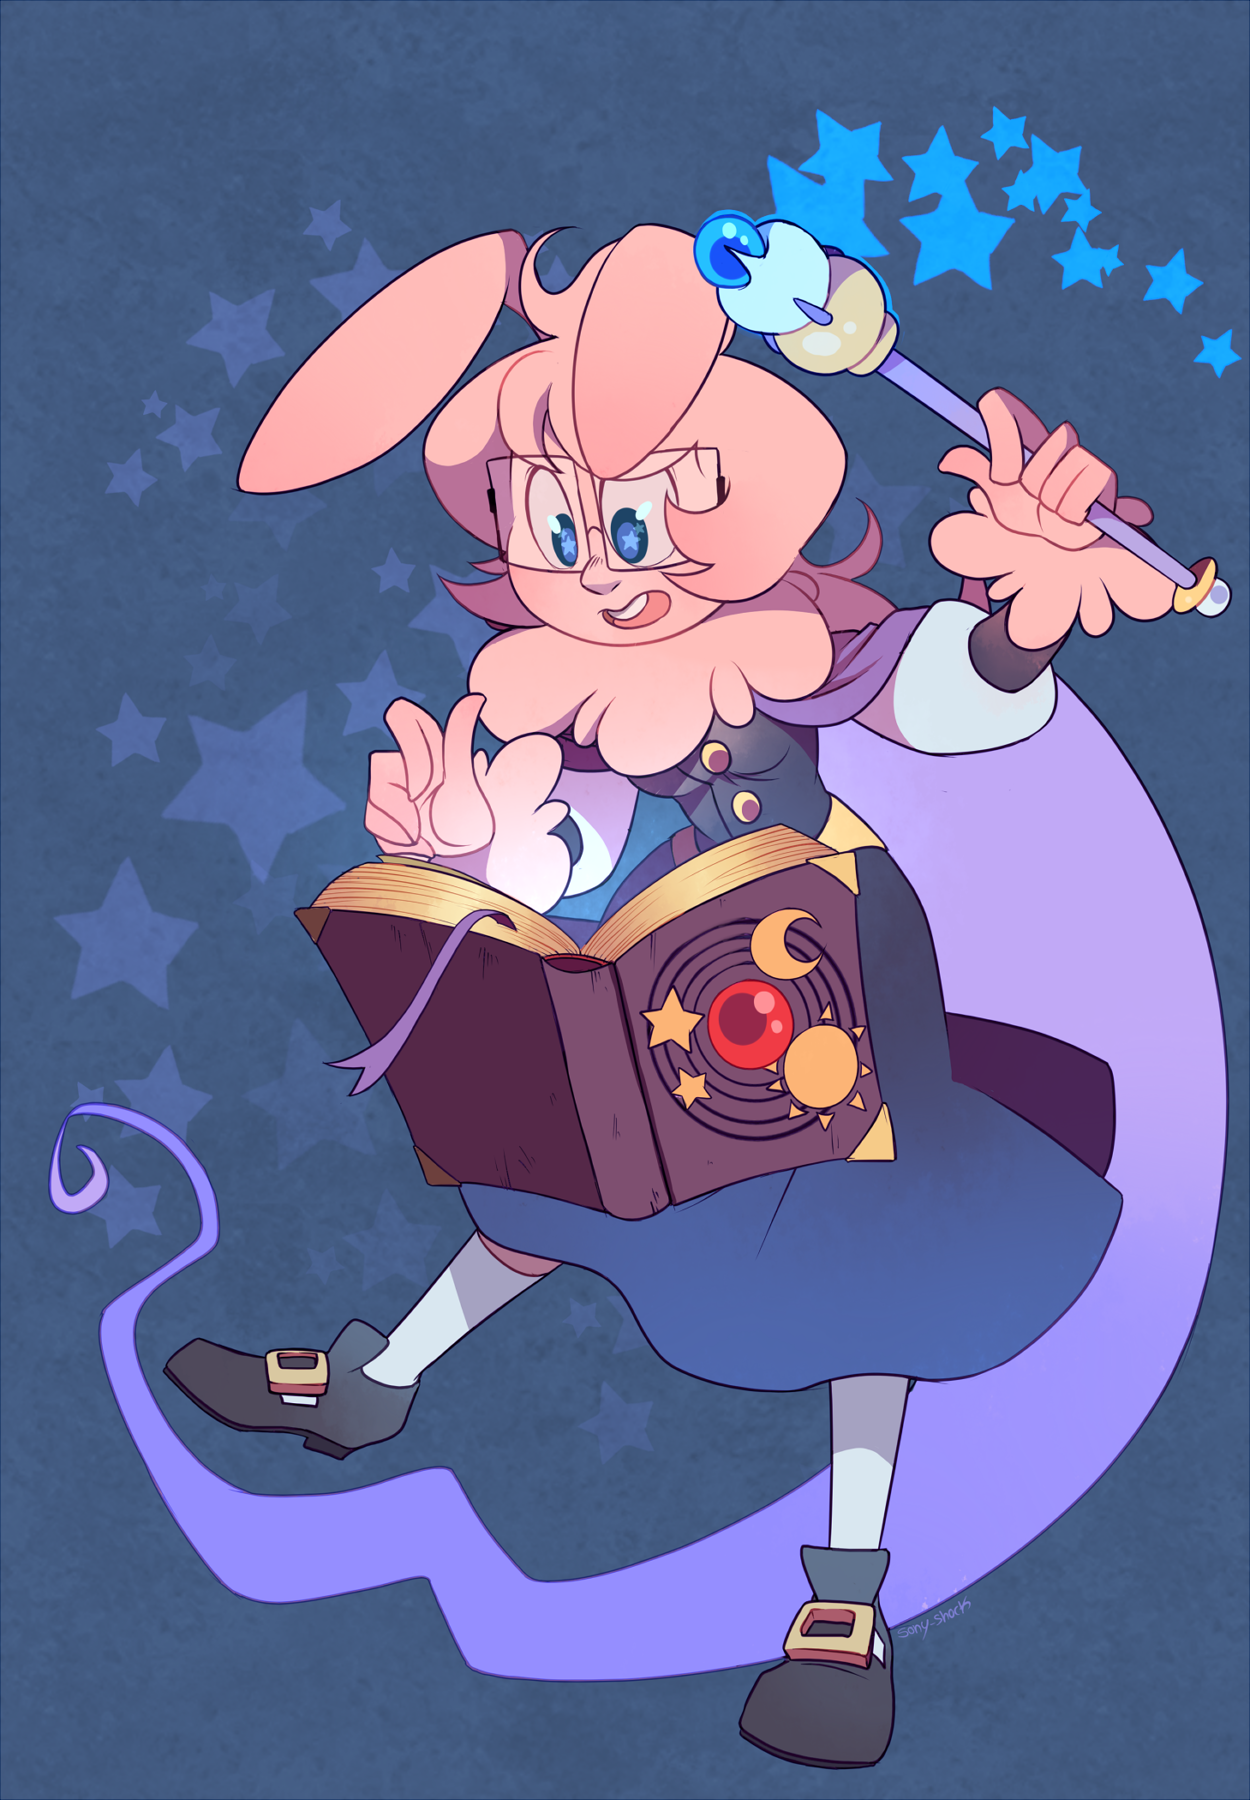 Mage bunny comm